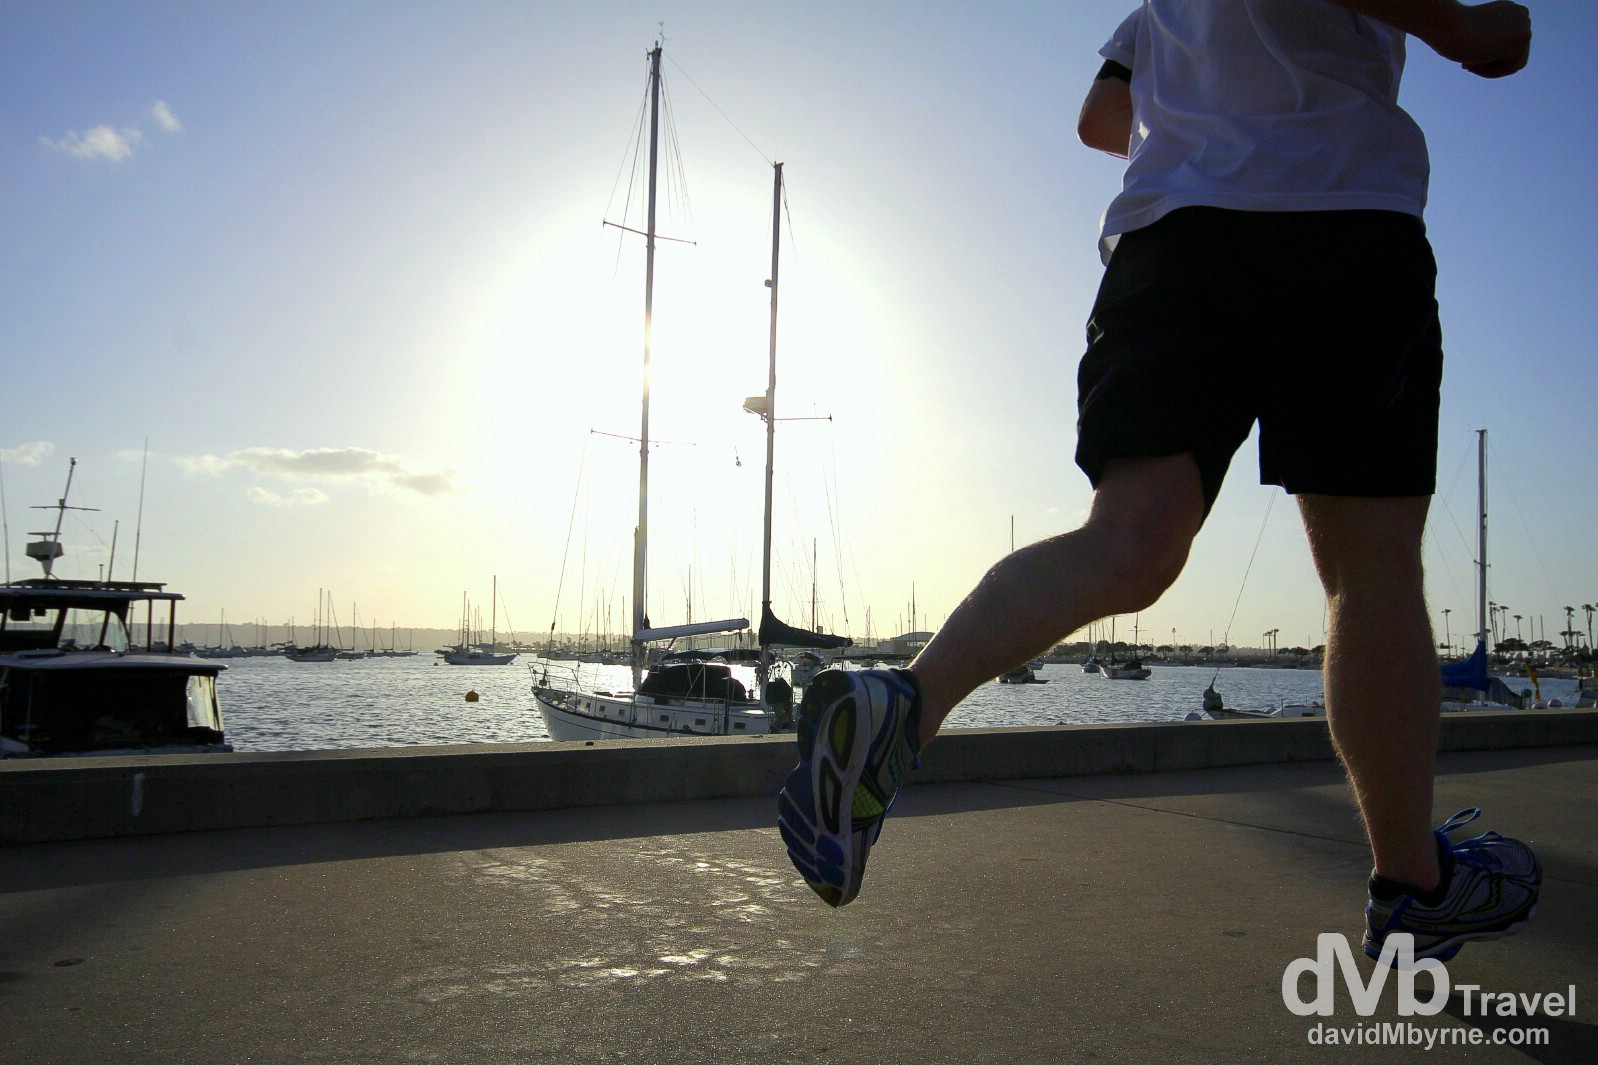 Running on Harbor Drive in San Diego, California, USA. April 16th 2013.